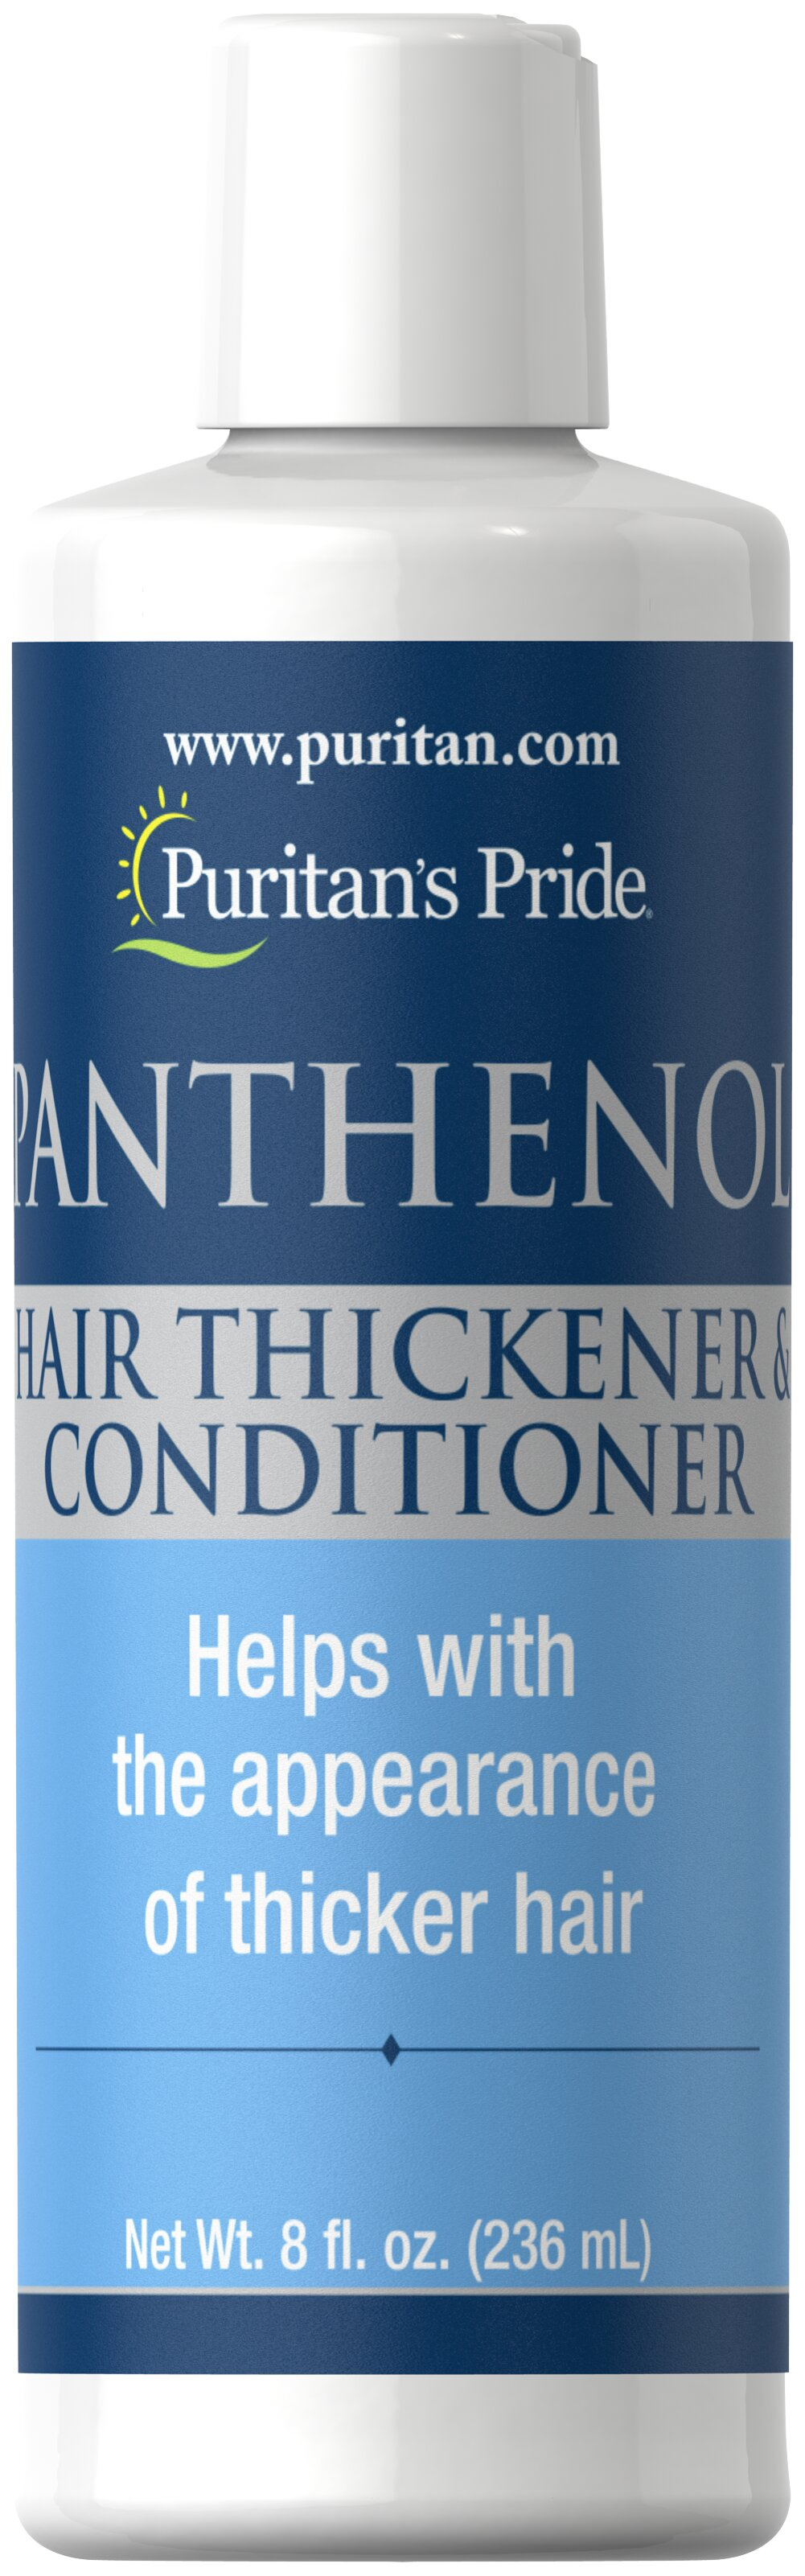 Panthenol Hair Thickener & Conditioner <p>Add New Body to Lifeless Hair</p><p>Pamper your hair with Puritan's Pride Hair Thickener & Conditioner. After continuous use, your hair will have more body, feel stronger, and look healthier. Panthenol revitalizes your hair as it penetrates each hair shaft, and can make a dramatic difference in the look and feel of your hair.</p> 8 fl oz Conditioner  $7.71